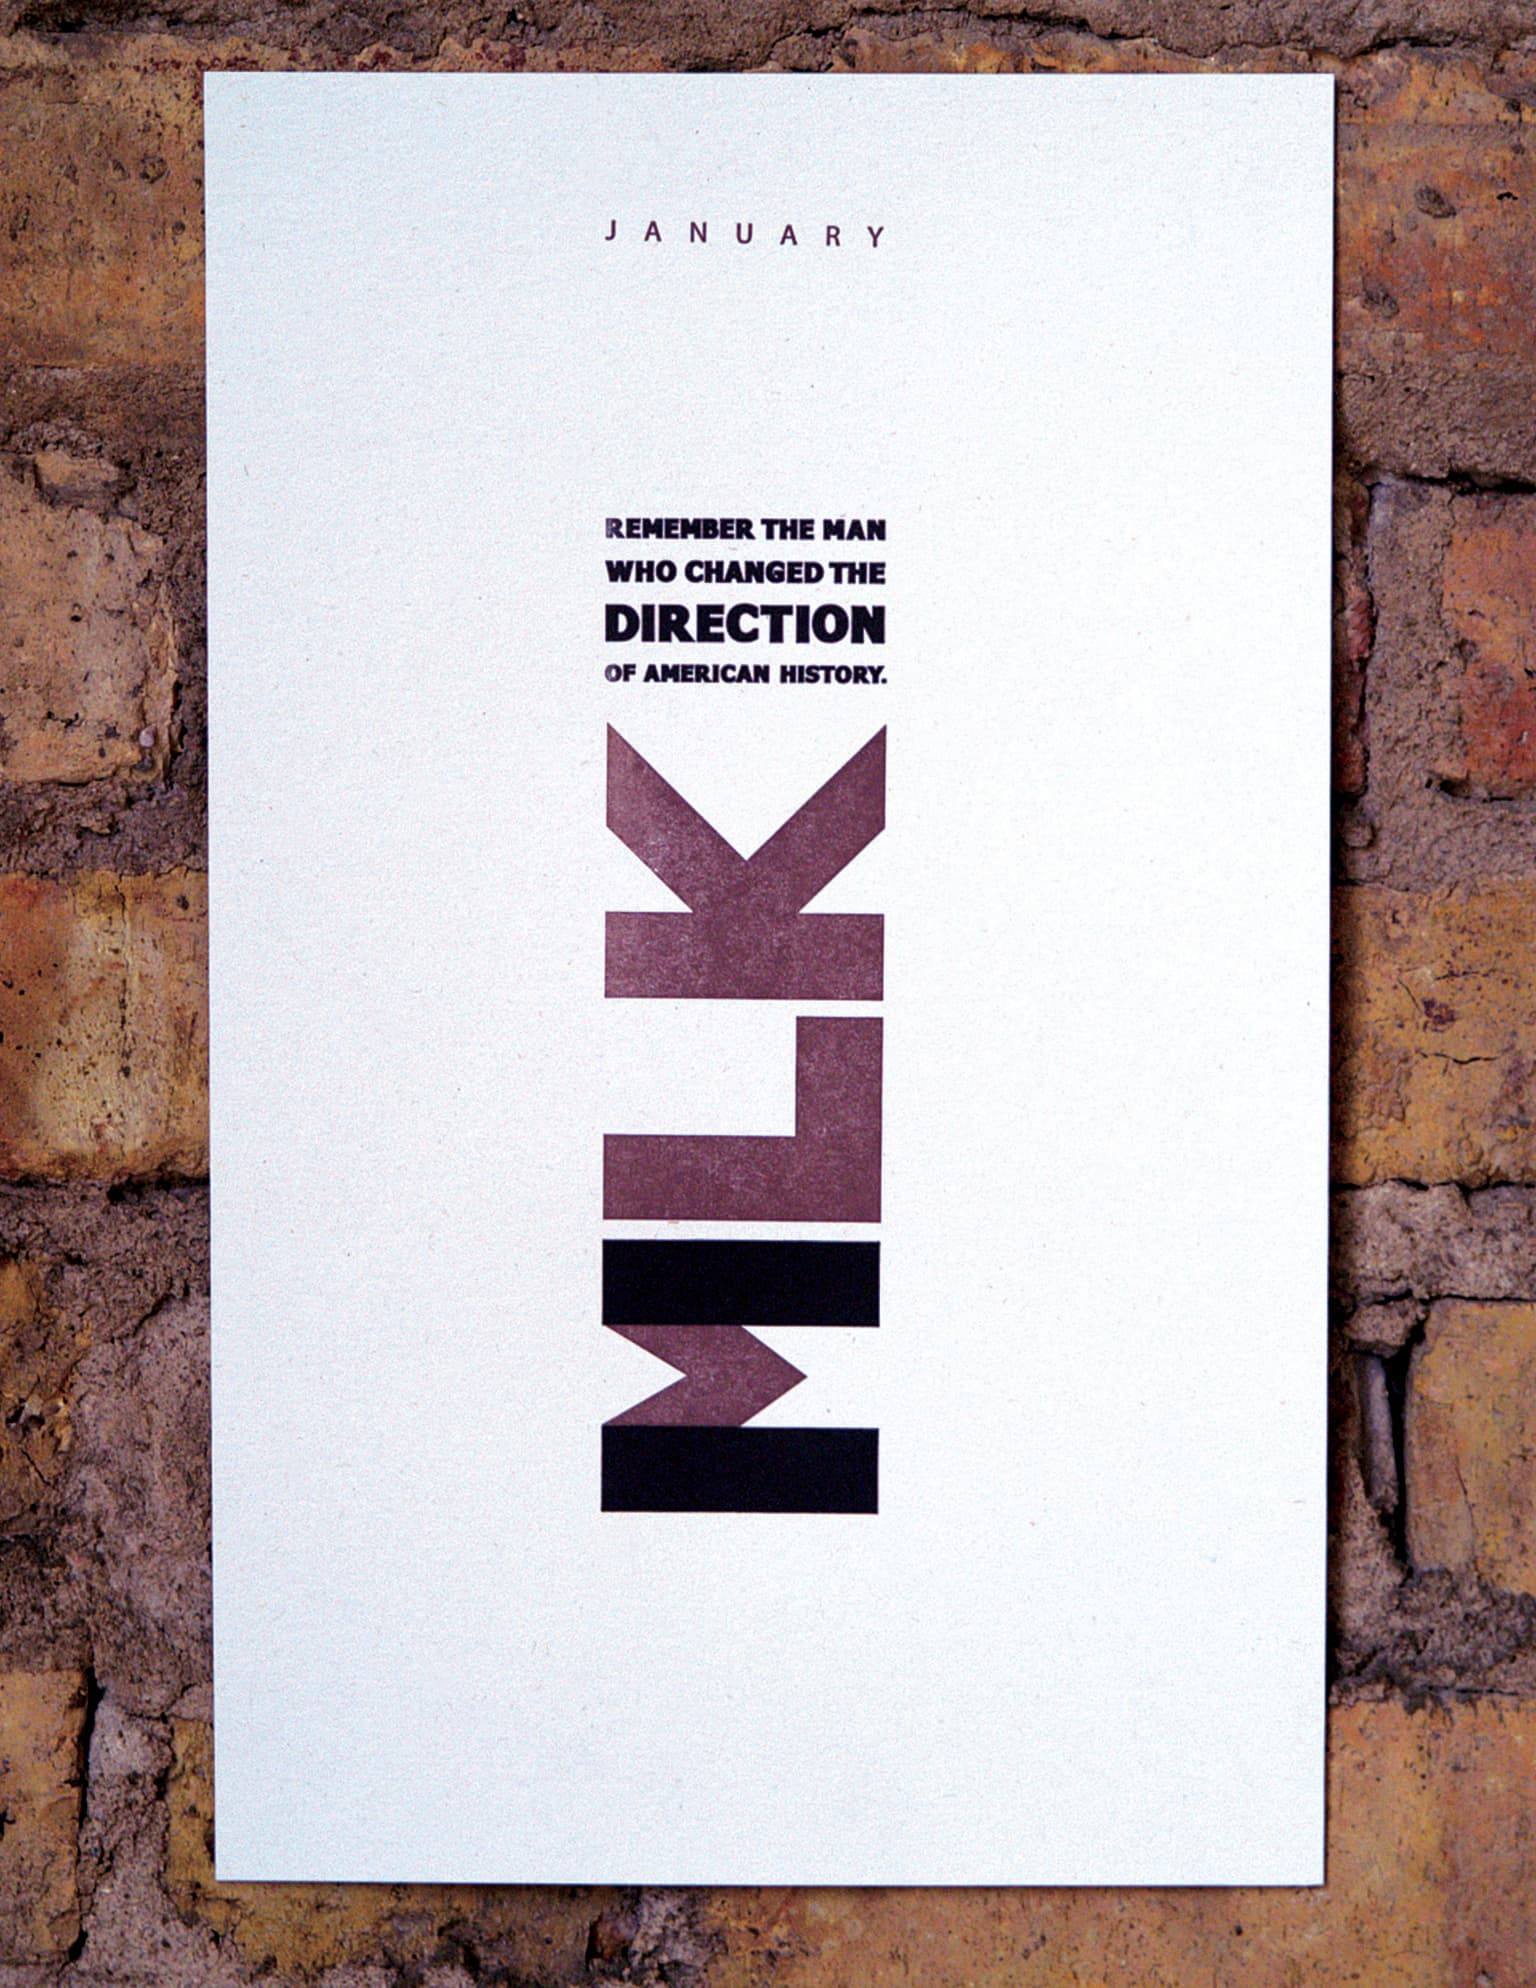 MLK DAY POSTER CAMPAIGN